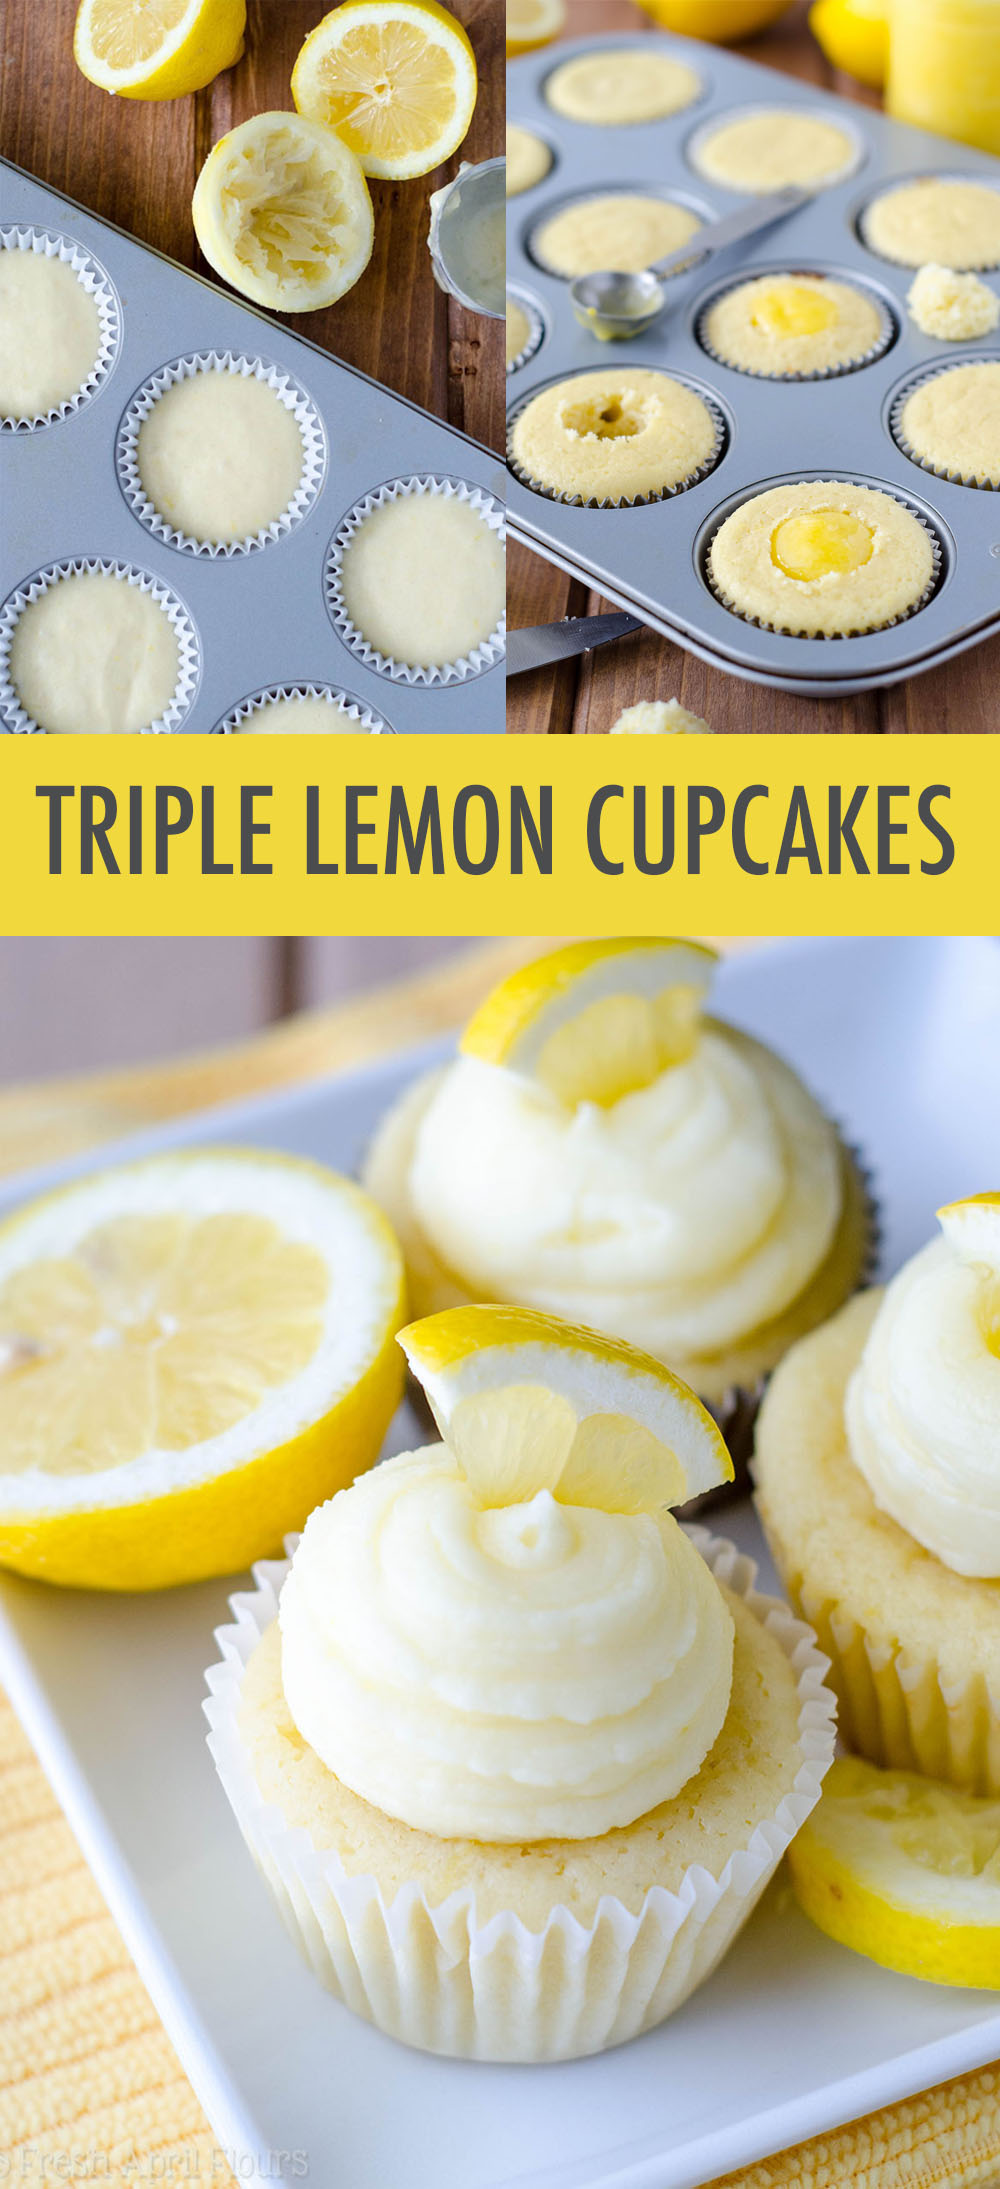 Tender lemon cupcakes filled with tangy homemade lemon curd and topped with a sweet, creamy lemon buttercream. A lemon lover's dream!